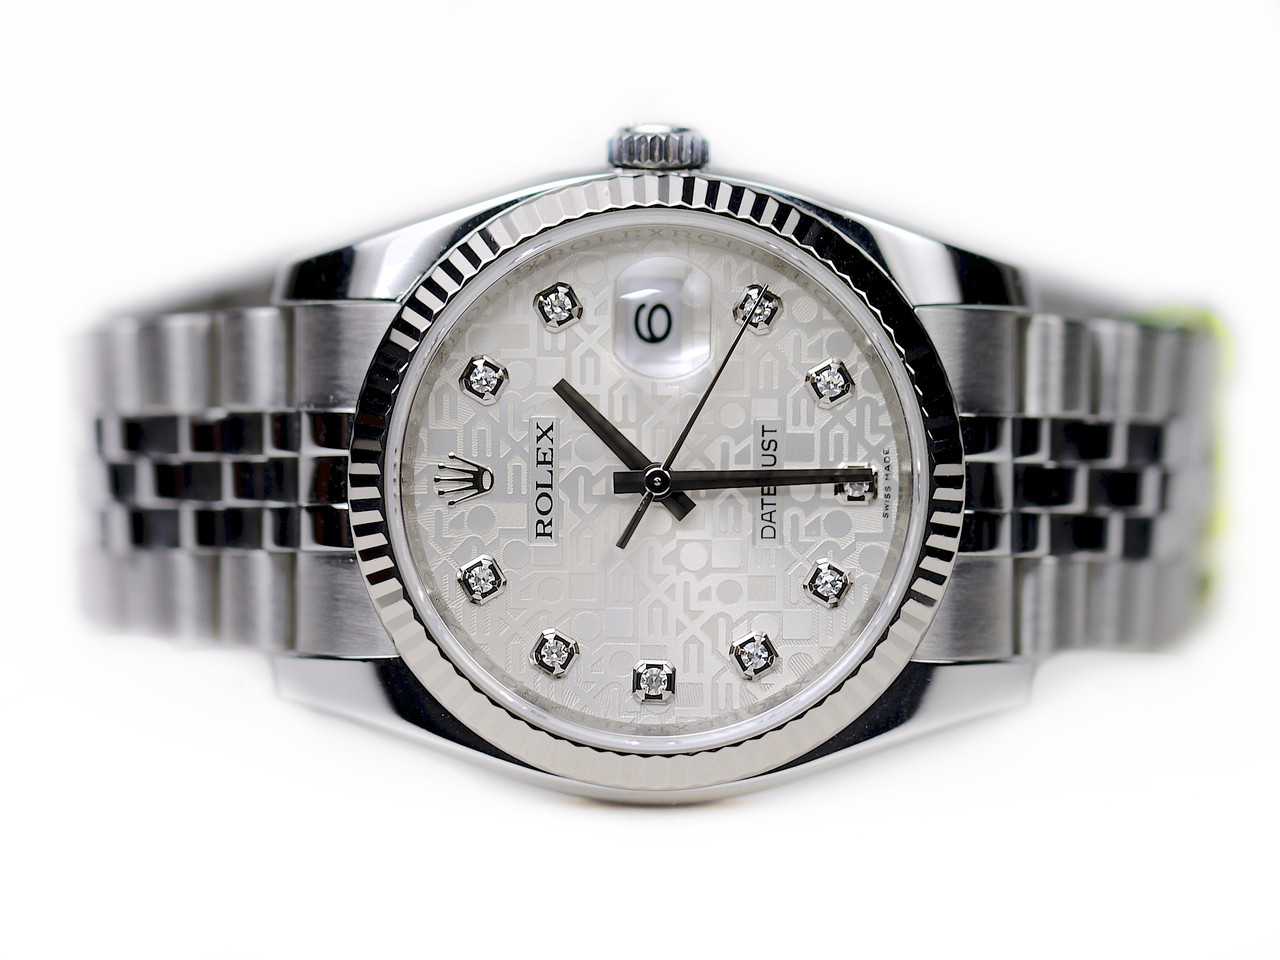 84a6f1f1627 Rolex Watch - Datejust Jubilee Diamond Dial and Jubilee Bracelet pre-owned  sale from Legend of Time Chicago Watch Center